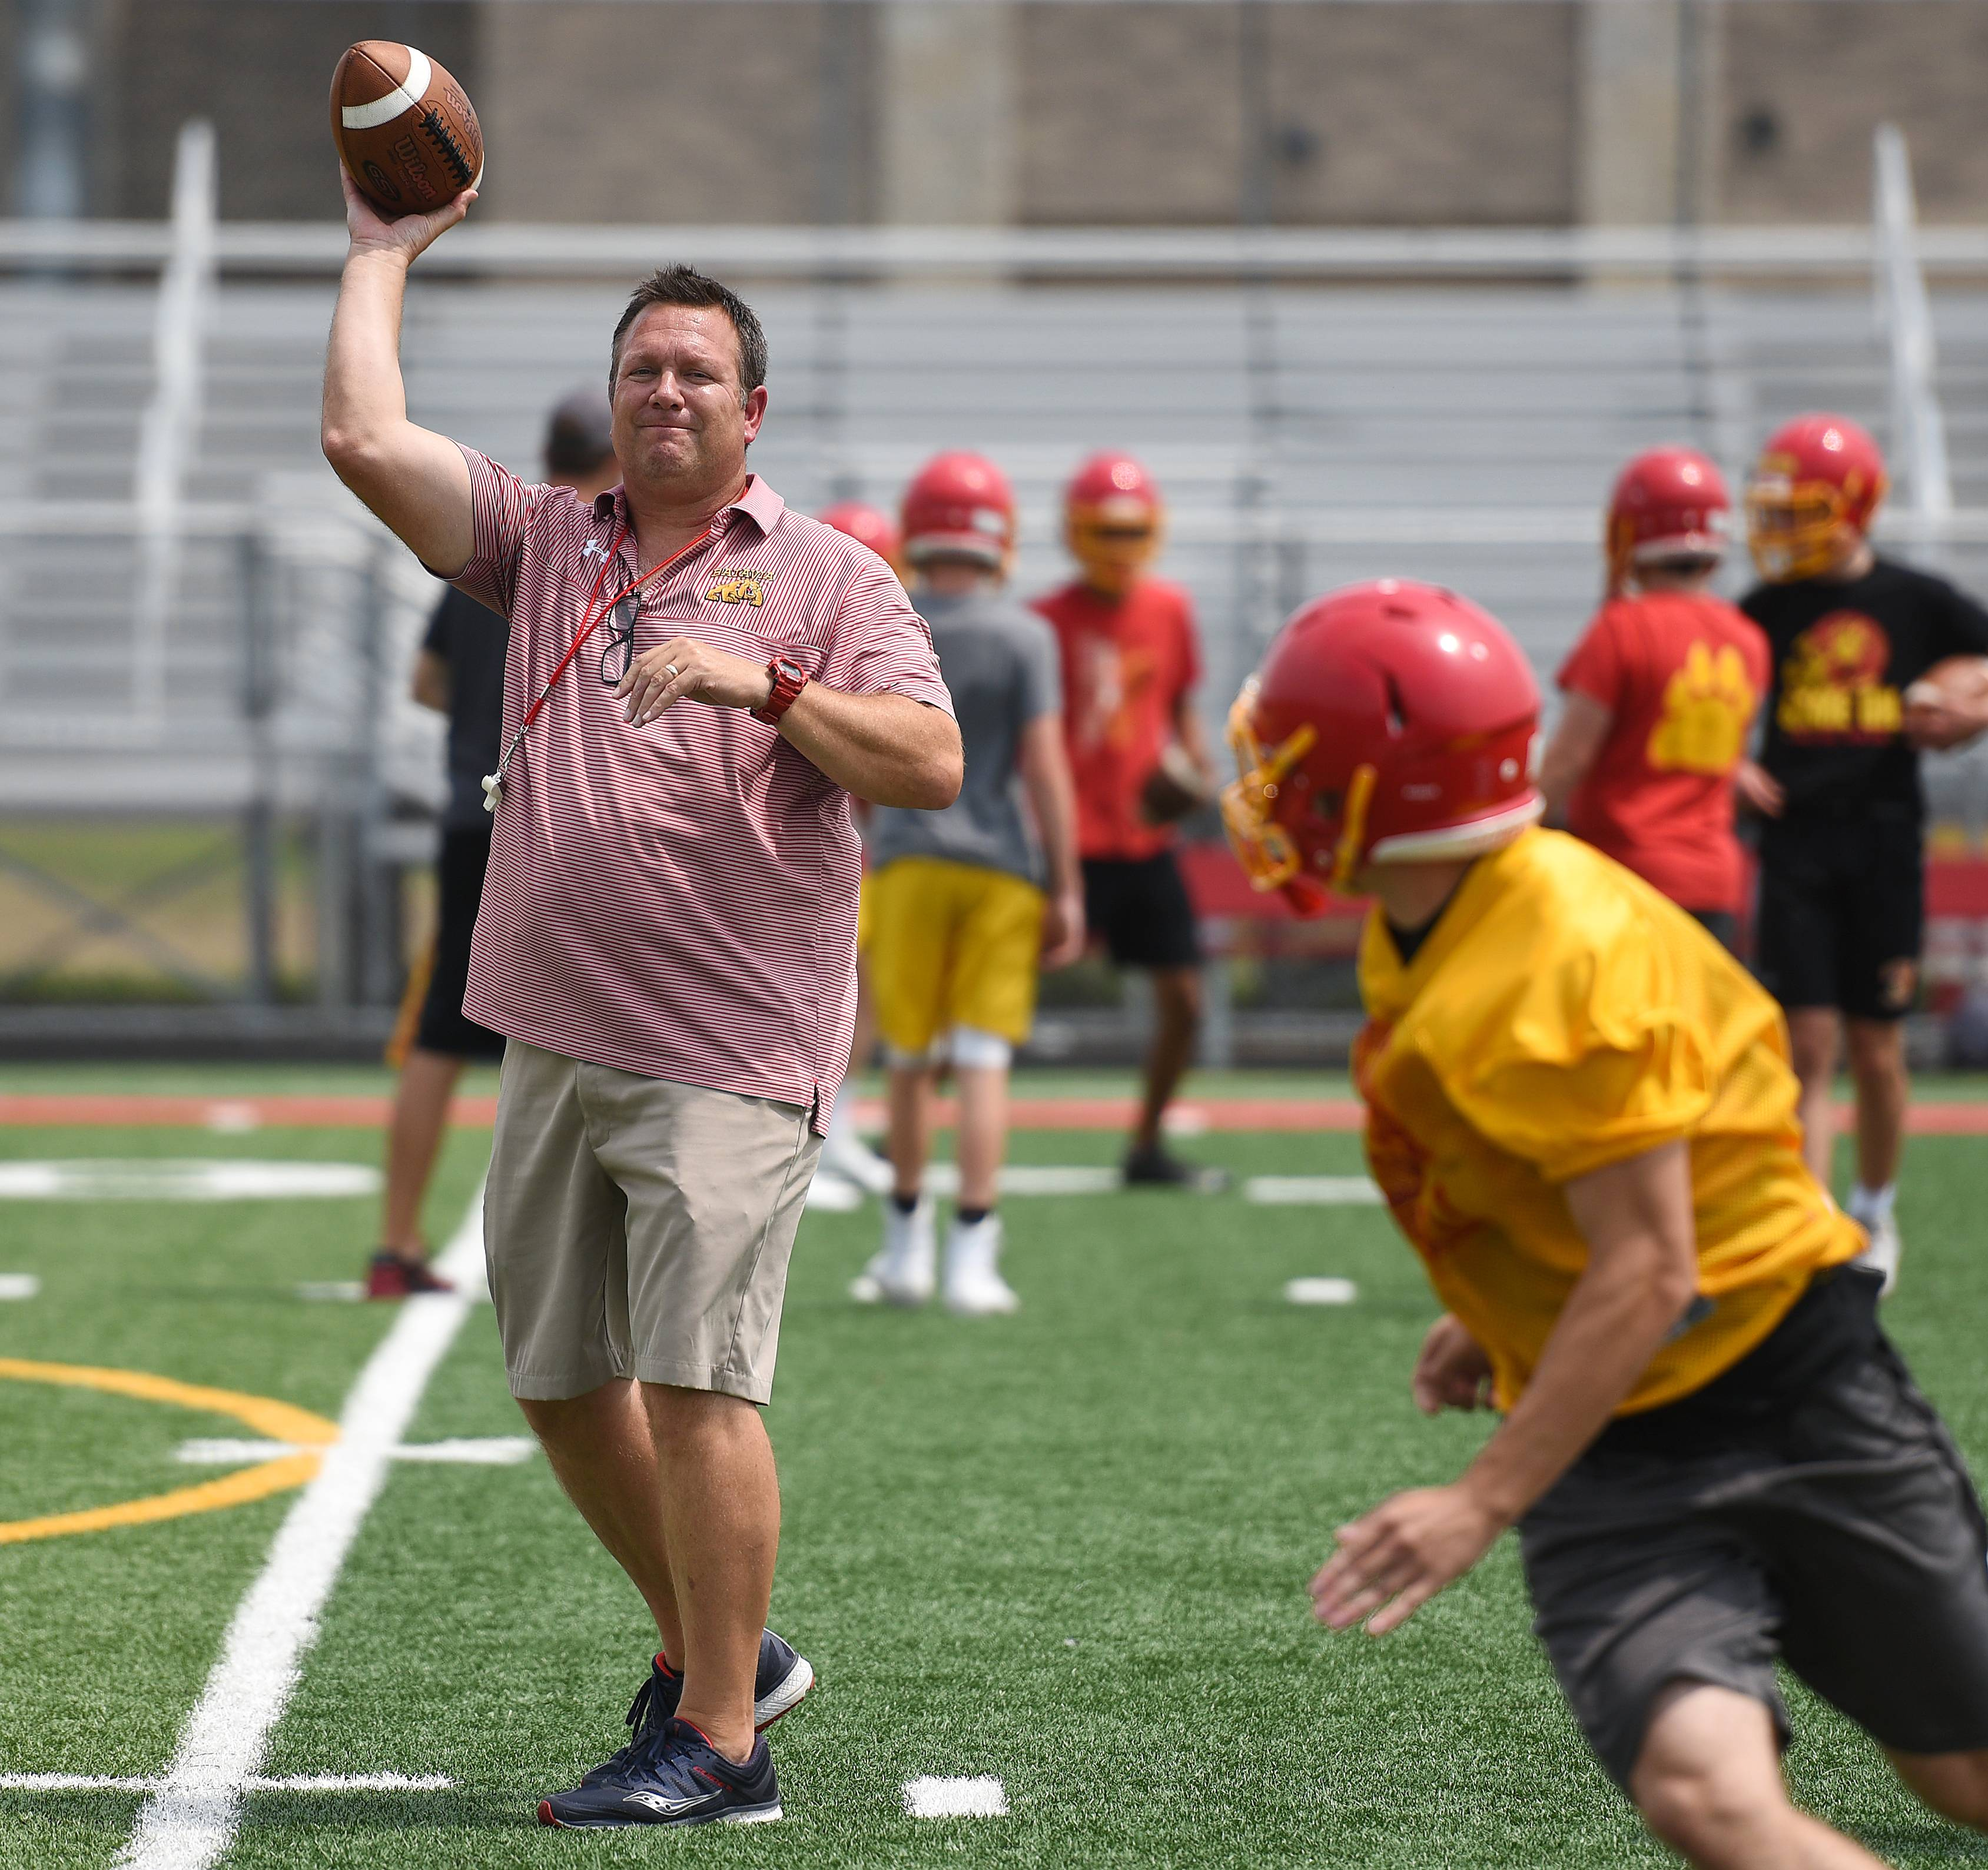 Batavia head coach Dennis Piron throws passes to his players during the first day of football practice at Batavia High School Monday. The Bulldogs are defending state champions.